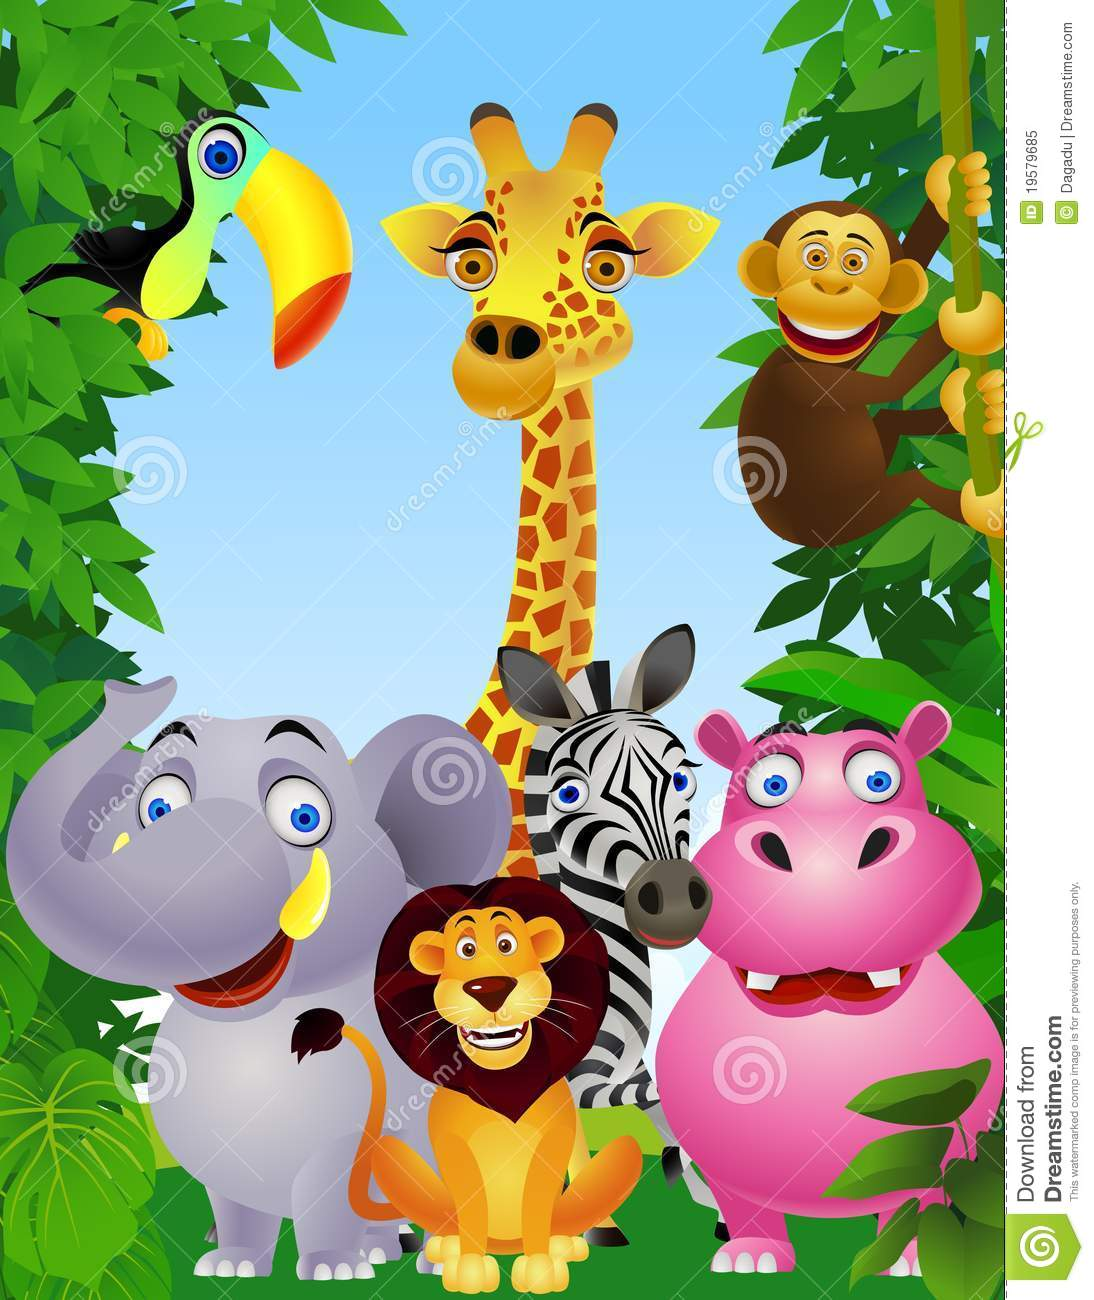 Royalty Free Stock Photo: Wild animal cartoon. Image: 19579685